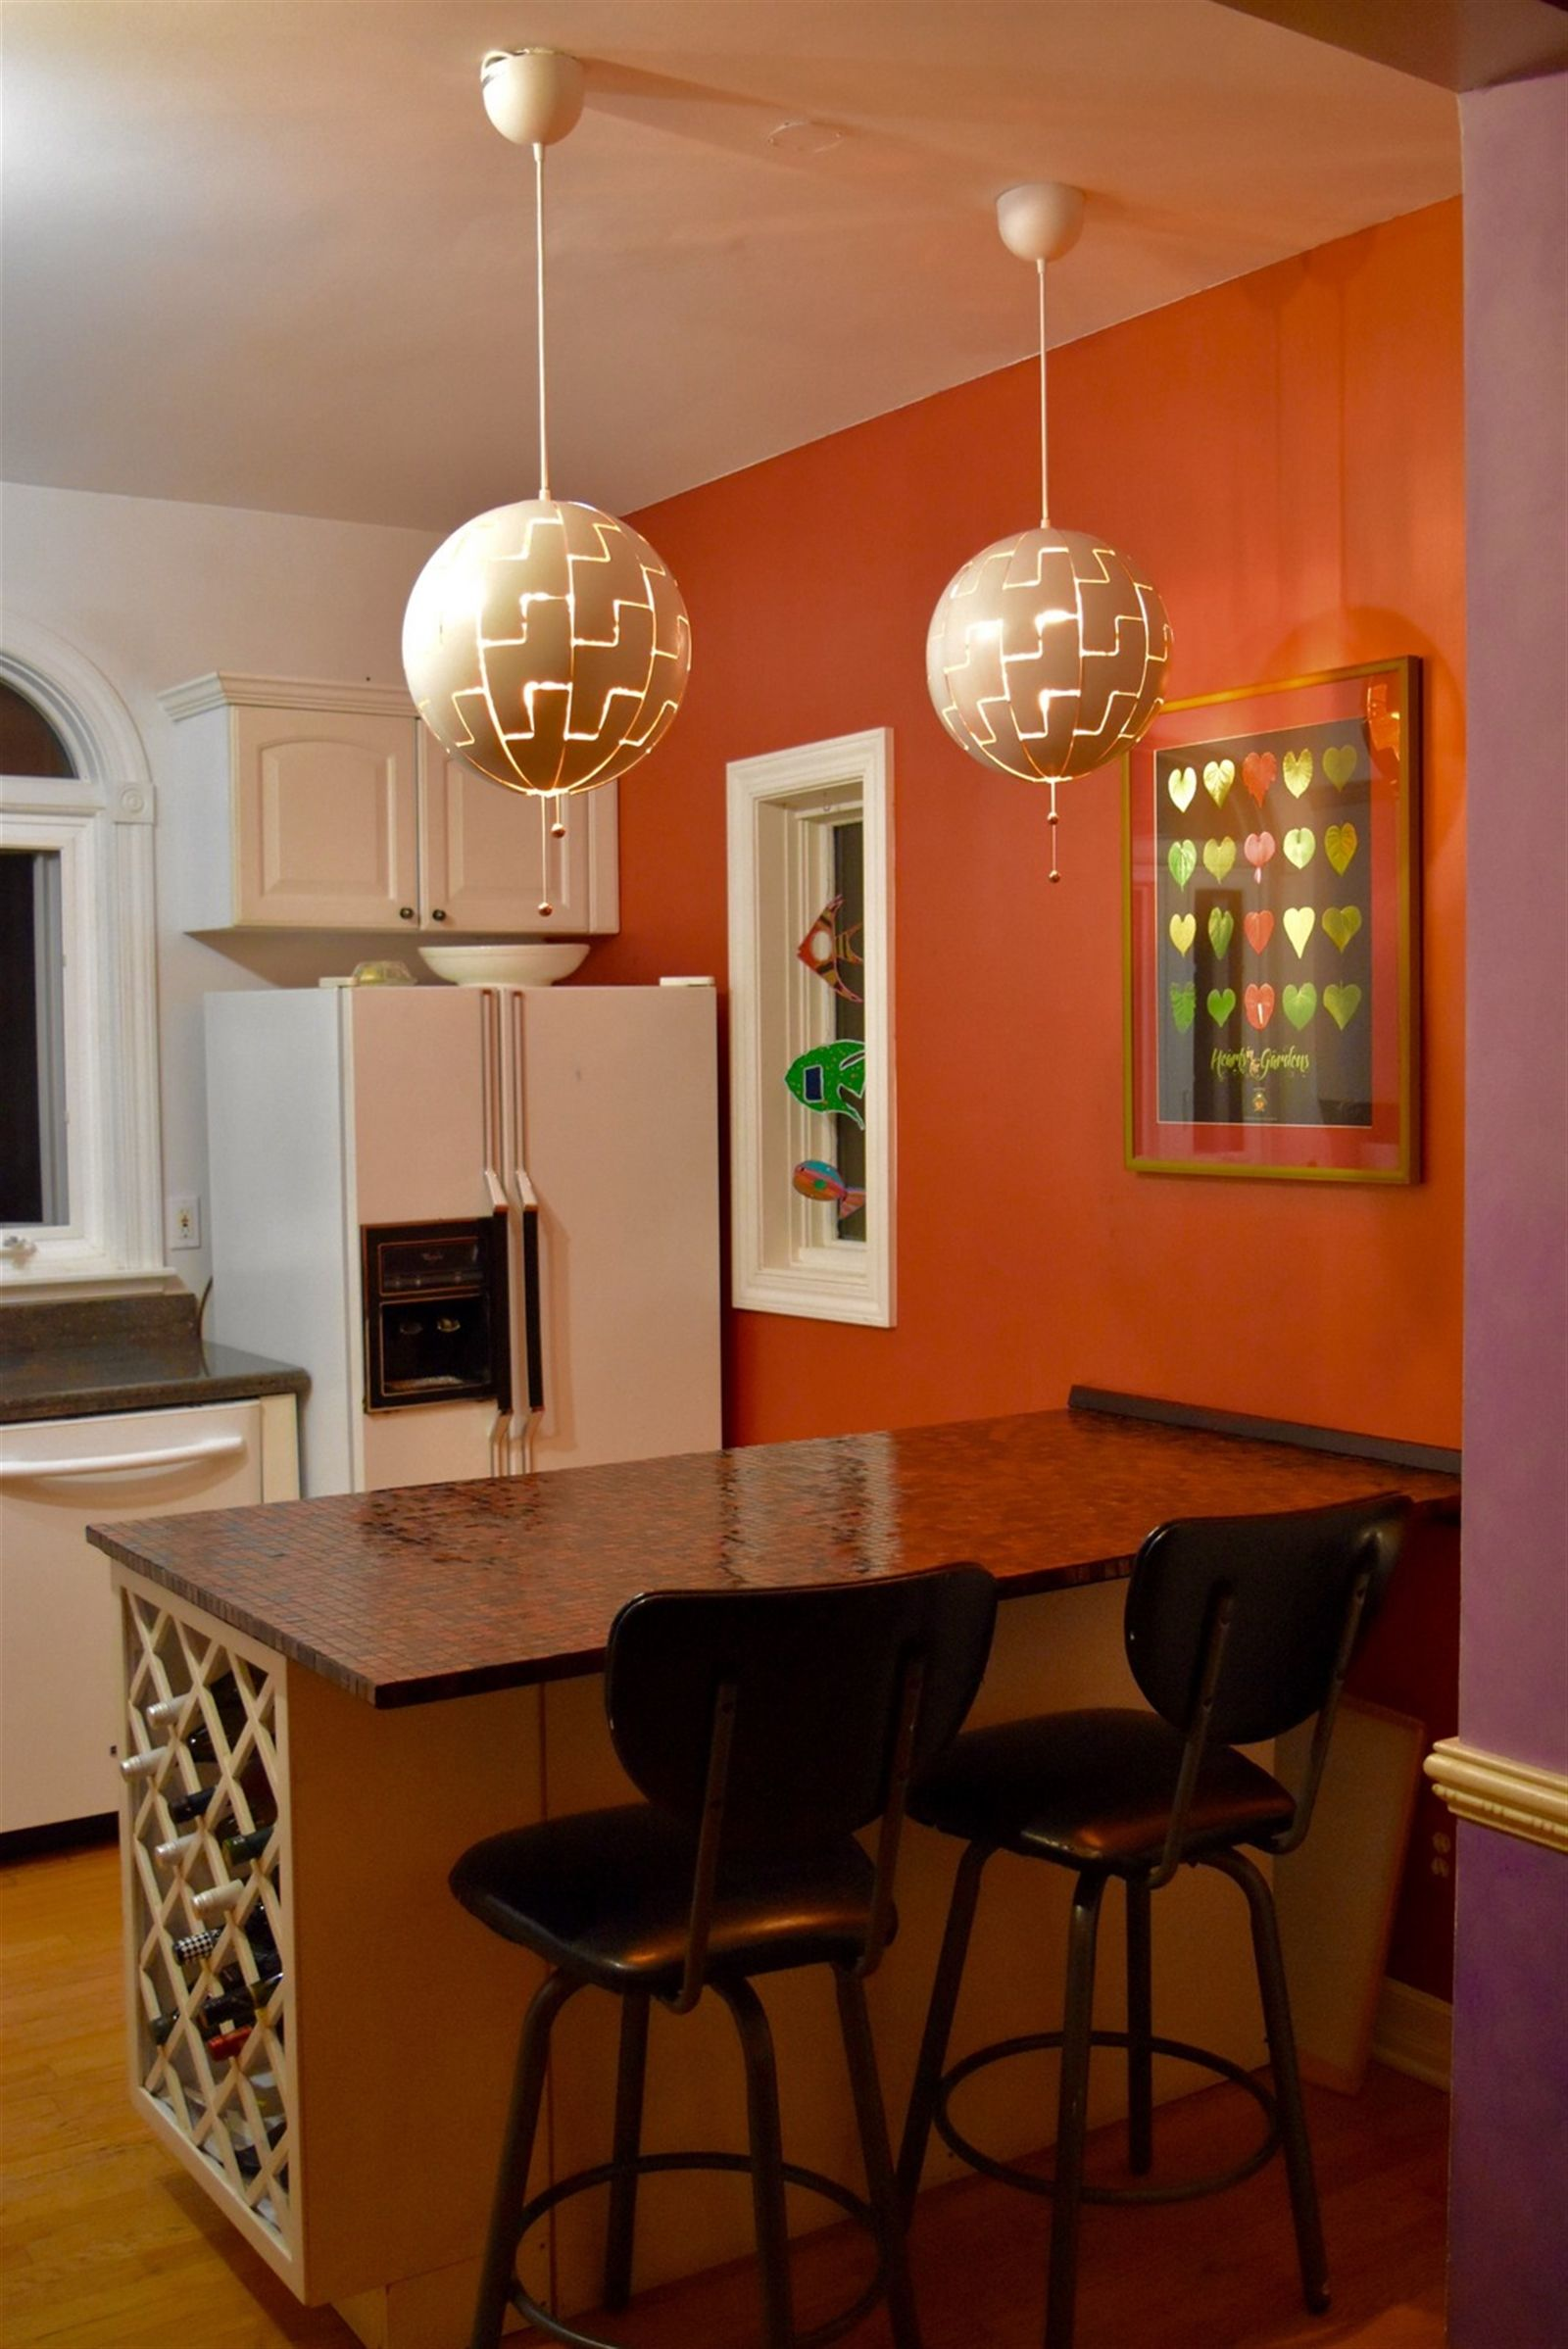 Jim Charlier built the kitchen island and tile countertop and also designed the poster on the wall. The pendants are from Ikea. The feature color wall is Ralph Lauren Persimmon Gold Metallic. Daughter Margaux made the metal fish hanging in the window.